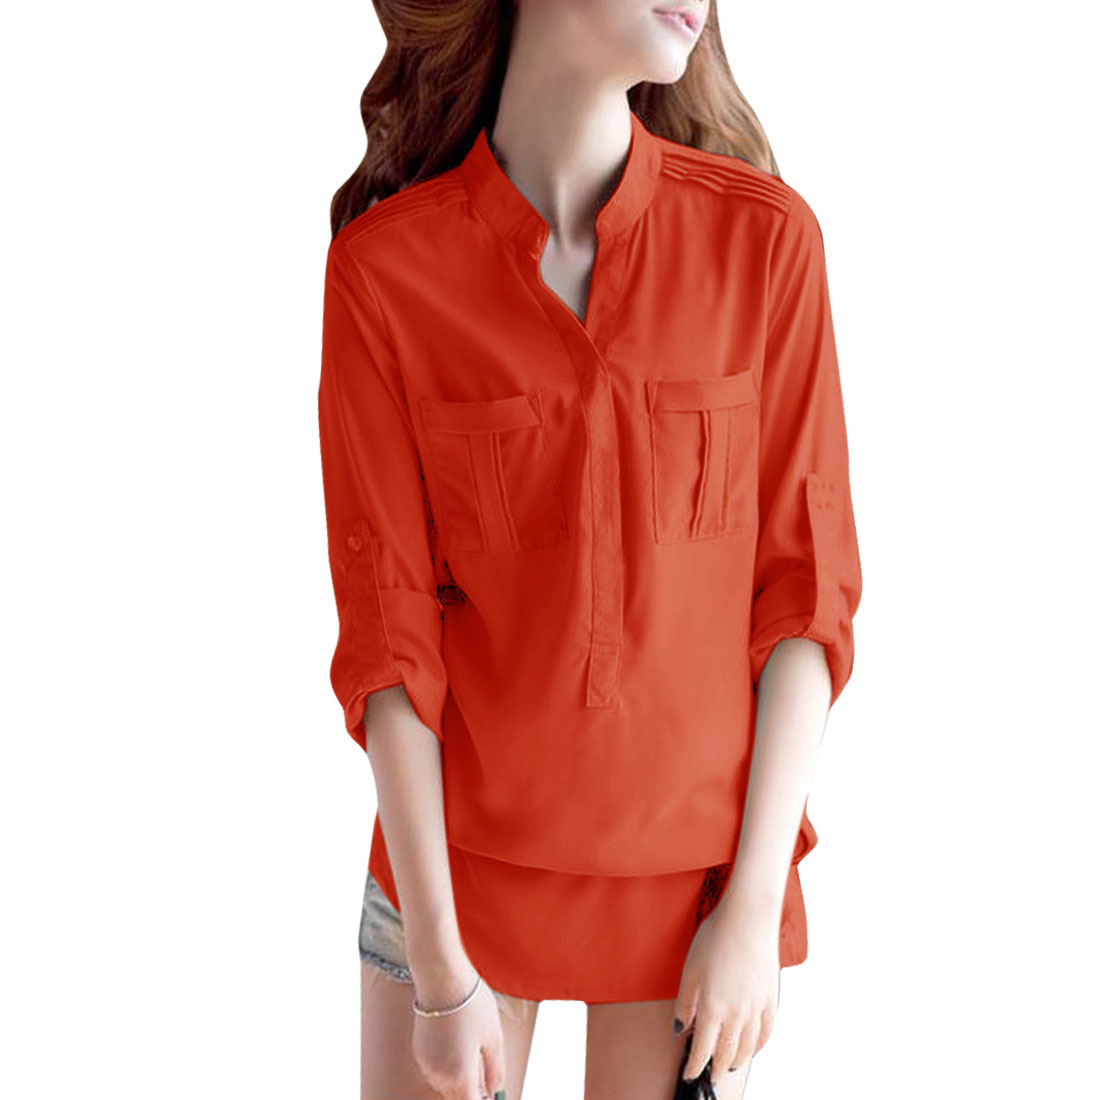 Lady Long Sleeved Chest Pockets Buttoned Cuff Tops Shirts Orange-red S